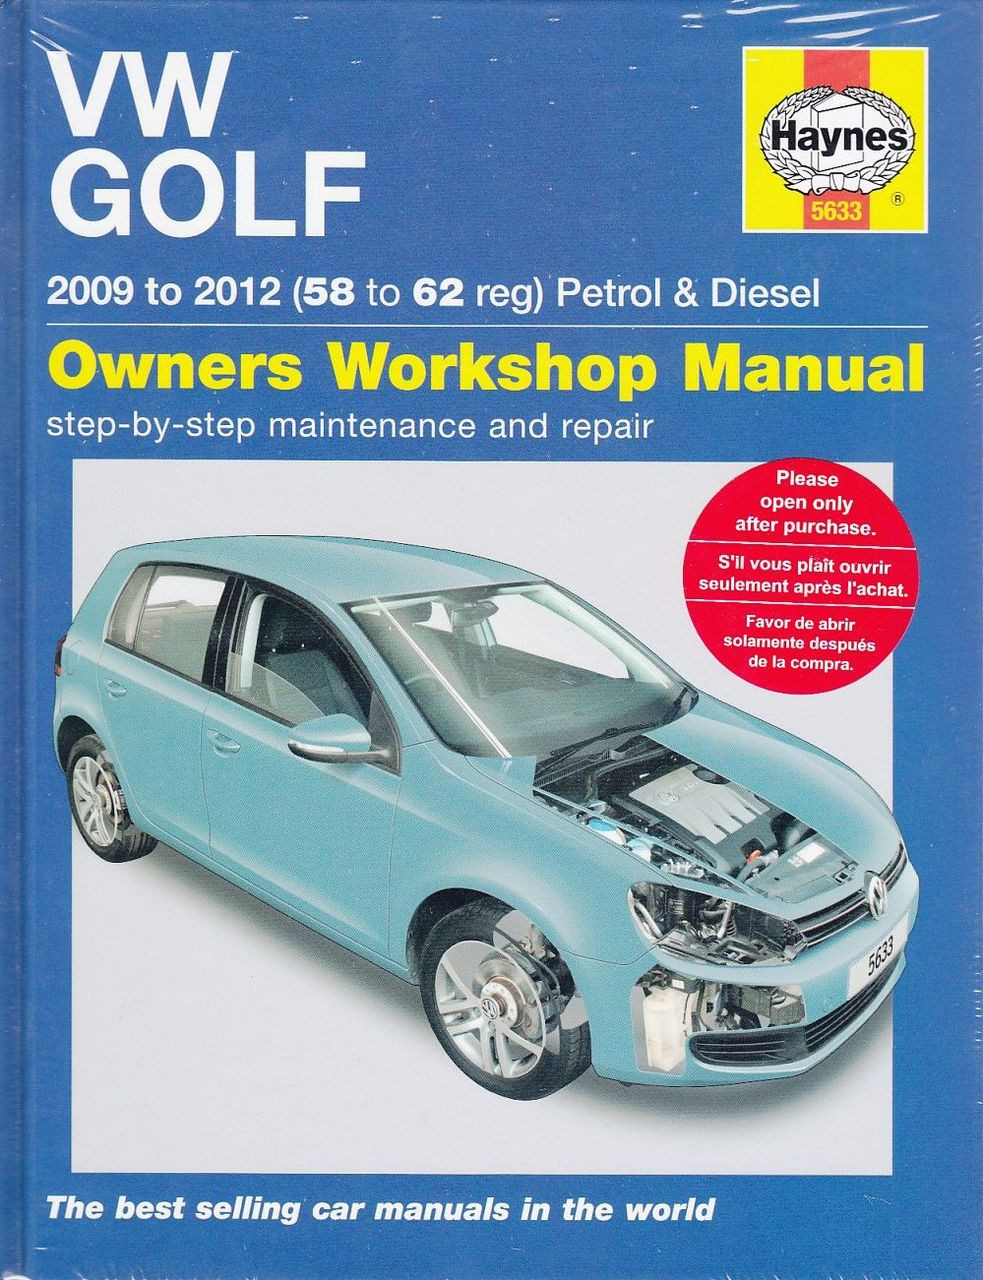 vw golf 2009 2012 petrol diesel repair manual rh automotobookshop com au 1996 VW GTI VR6 1996 VW GTI VR6